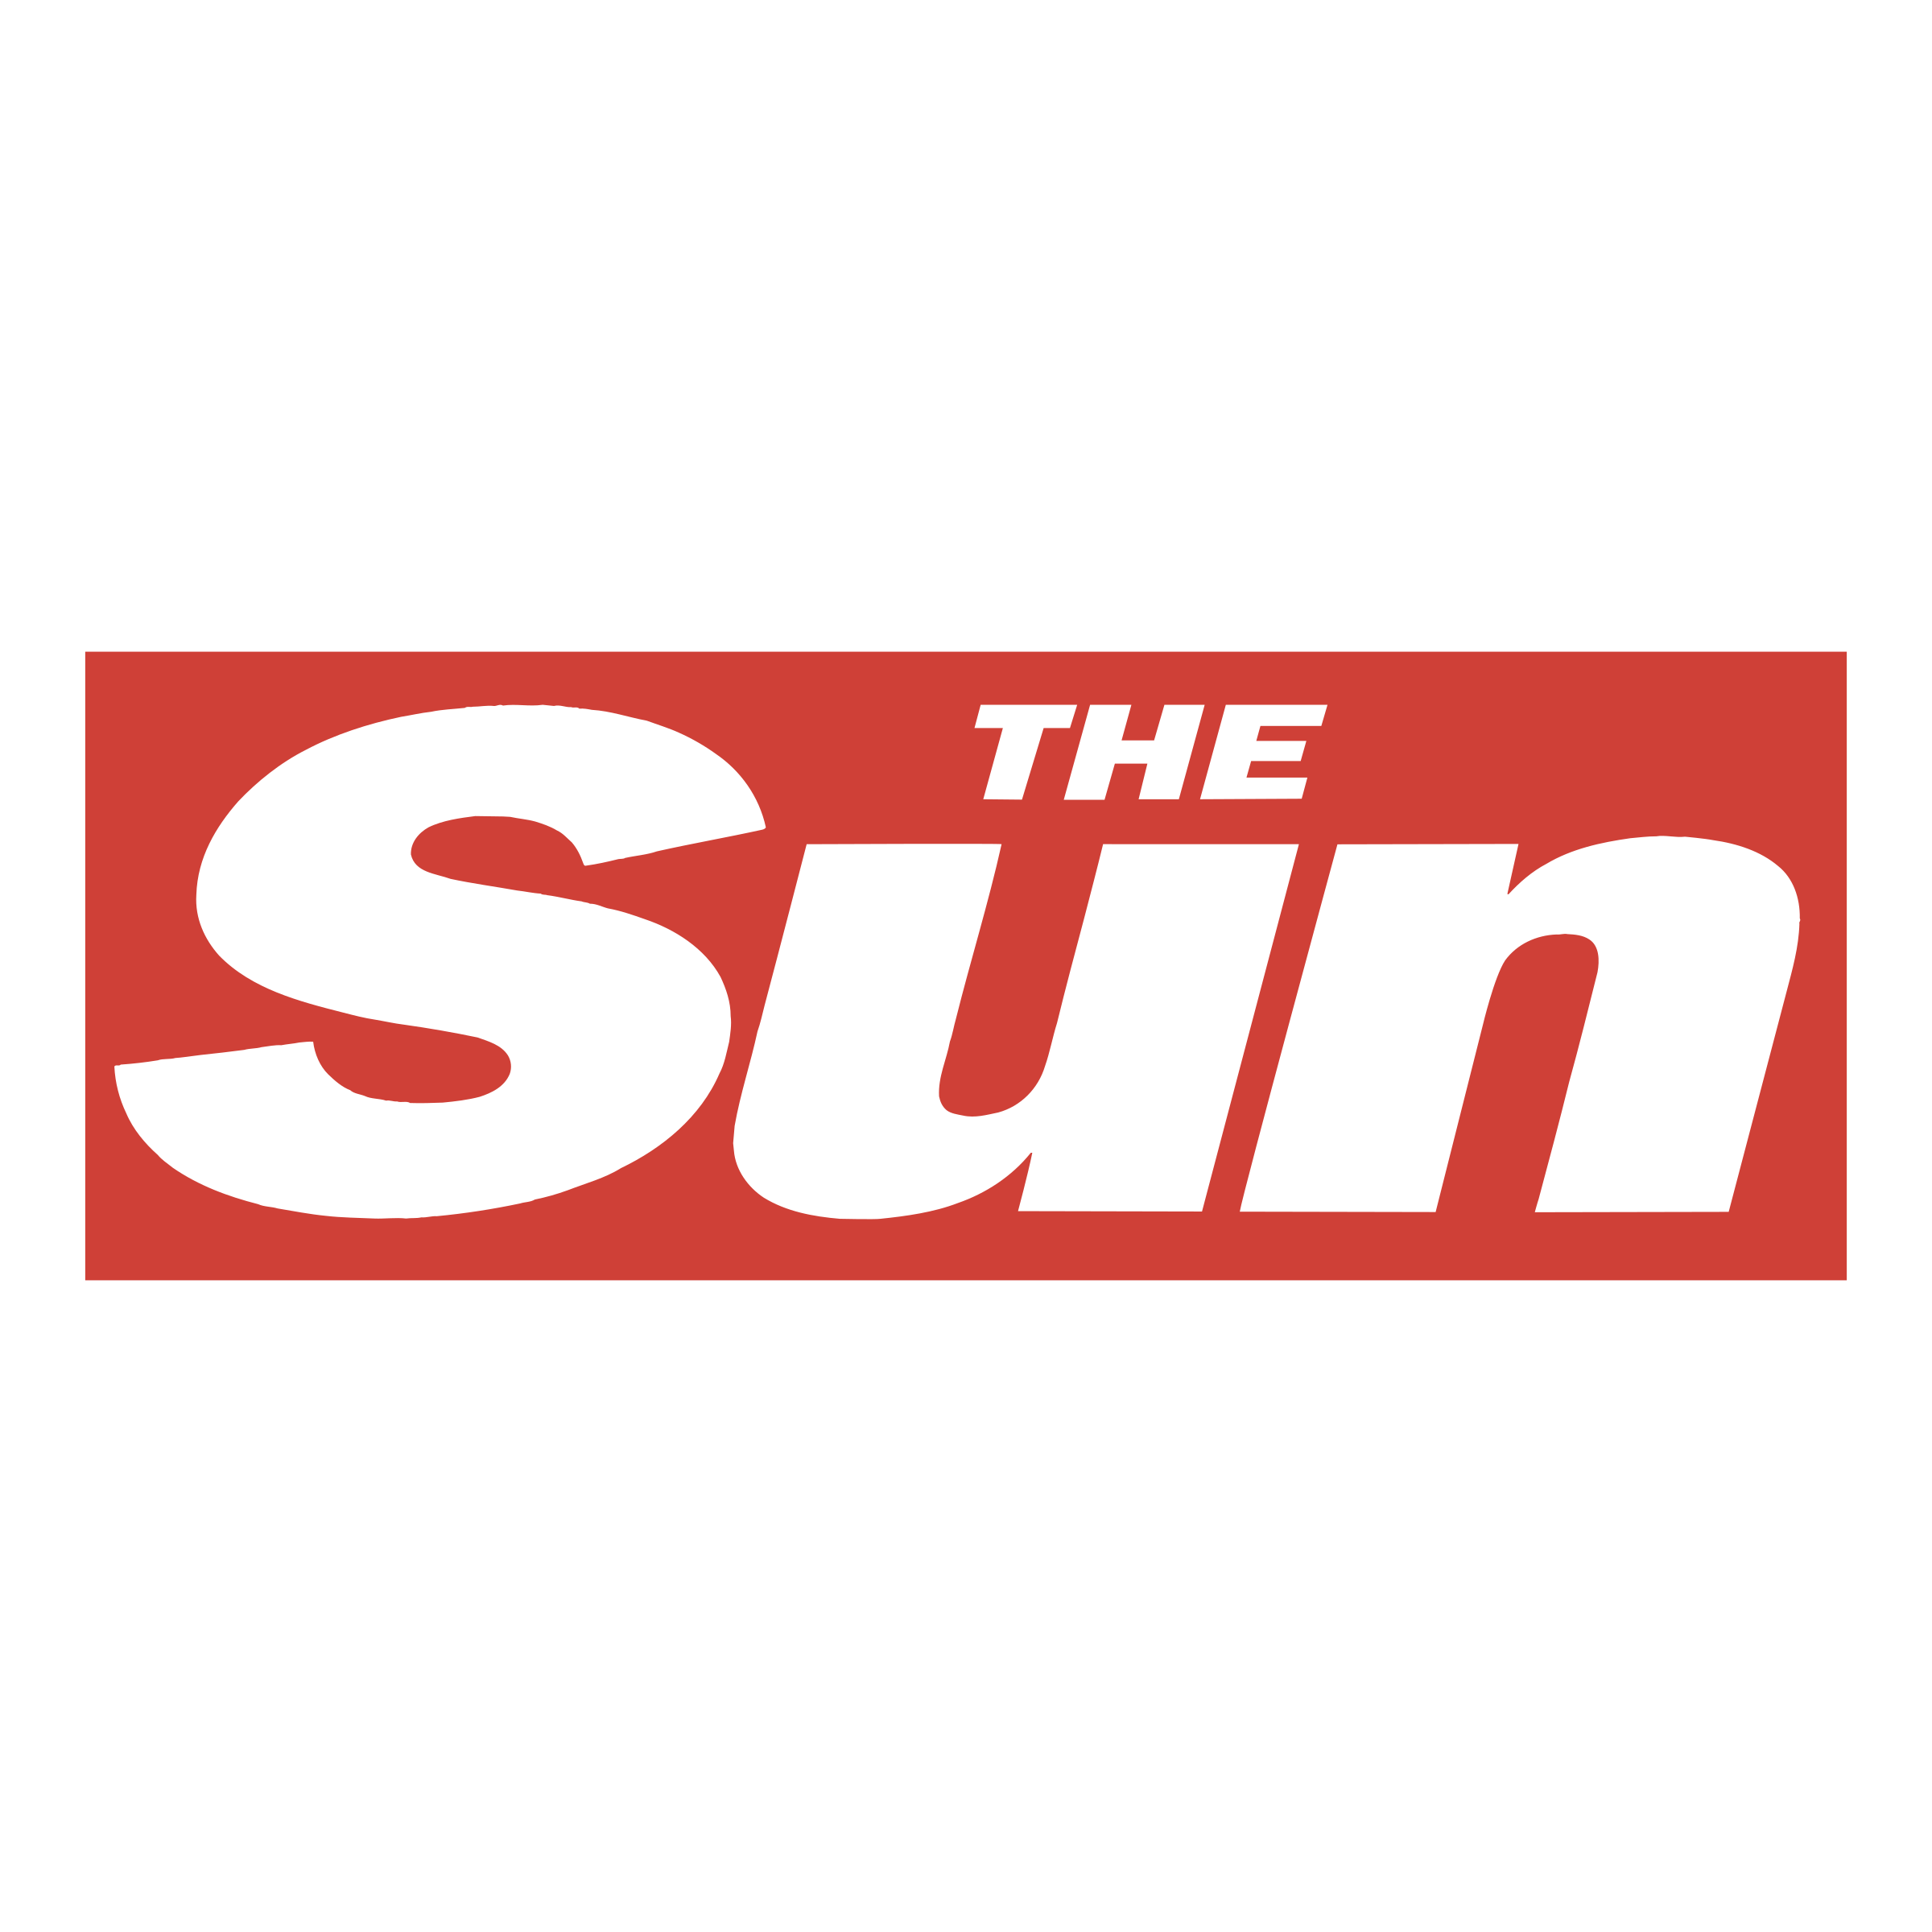 the sun newspaper logo png transparent & svg vector - freebie supply